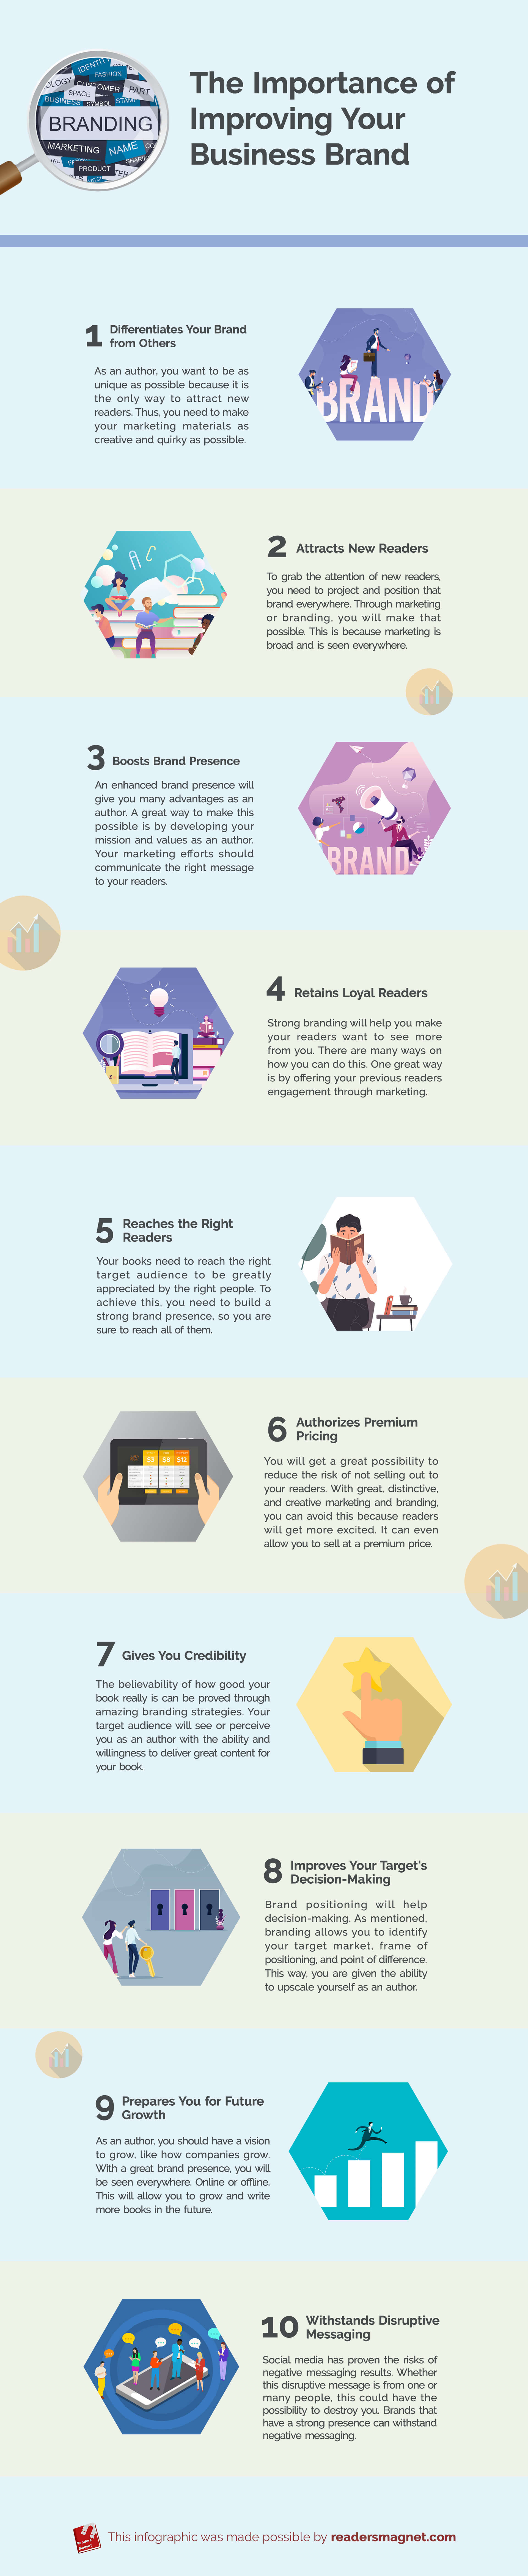 Rm Infographic The Importance Of Improving Your Business Brand infograhic image